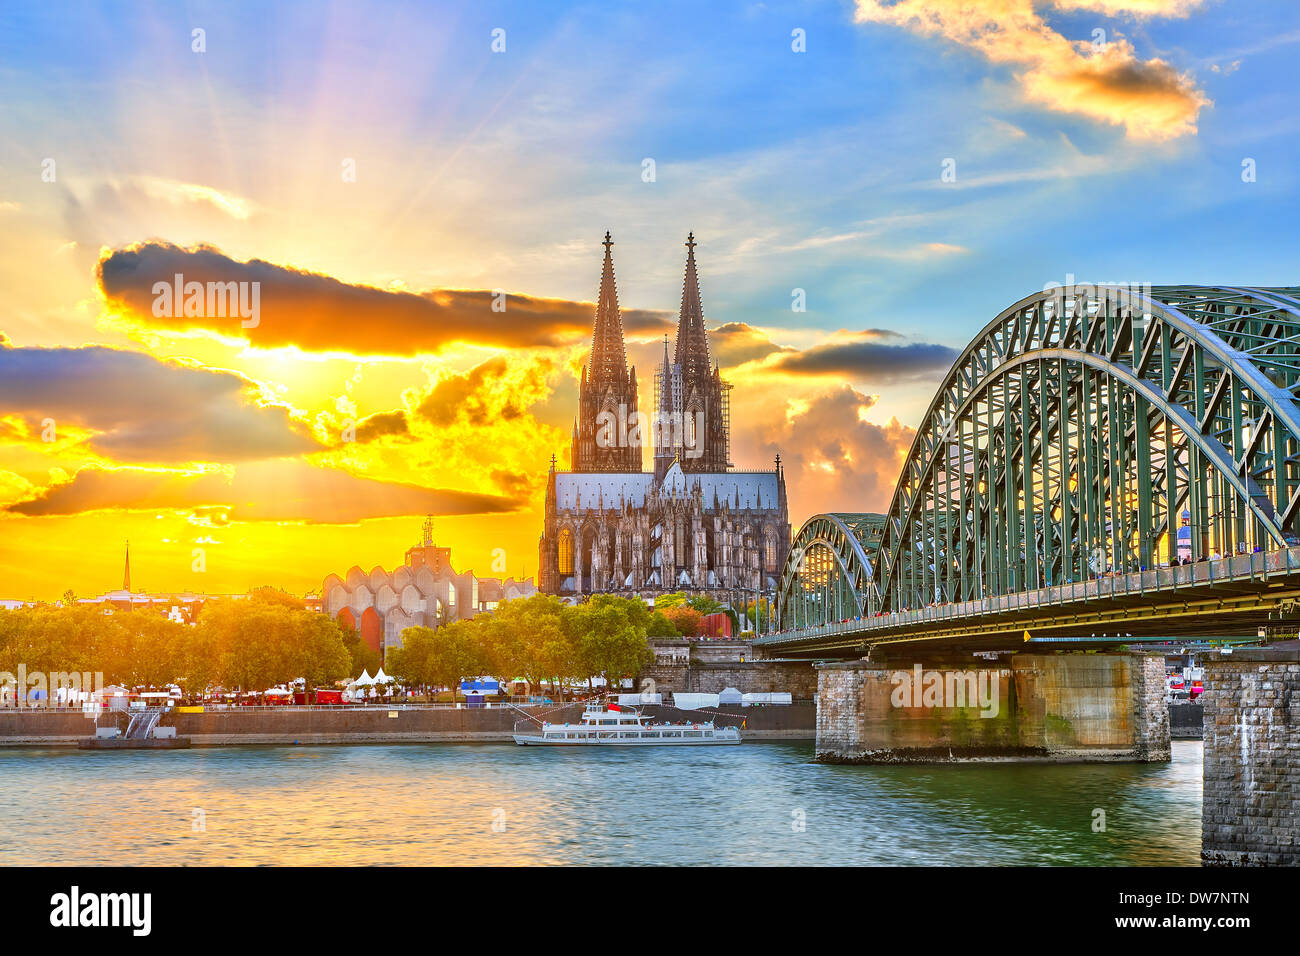 Cologne at sunset - Stock Image